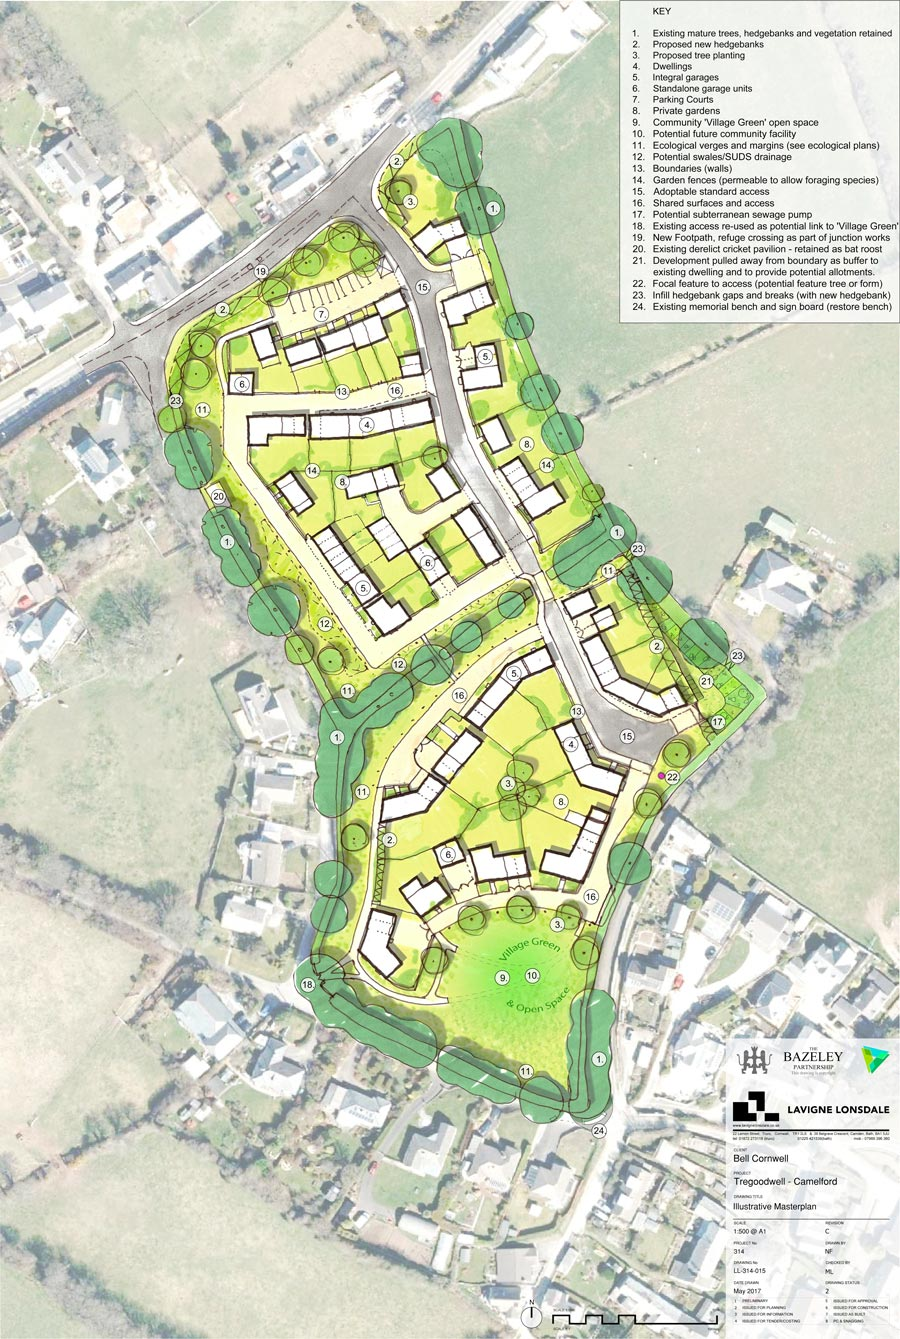 Camelford Housing Development designed by Cornwall Architects The Bazeley Partnership